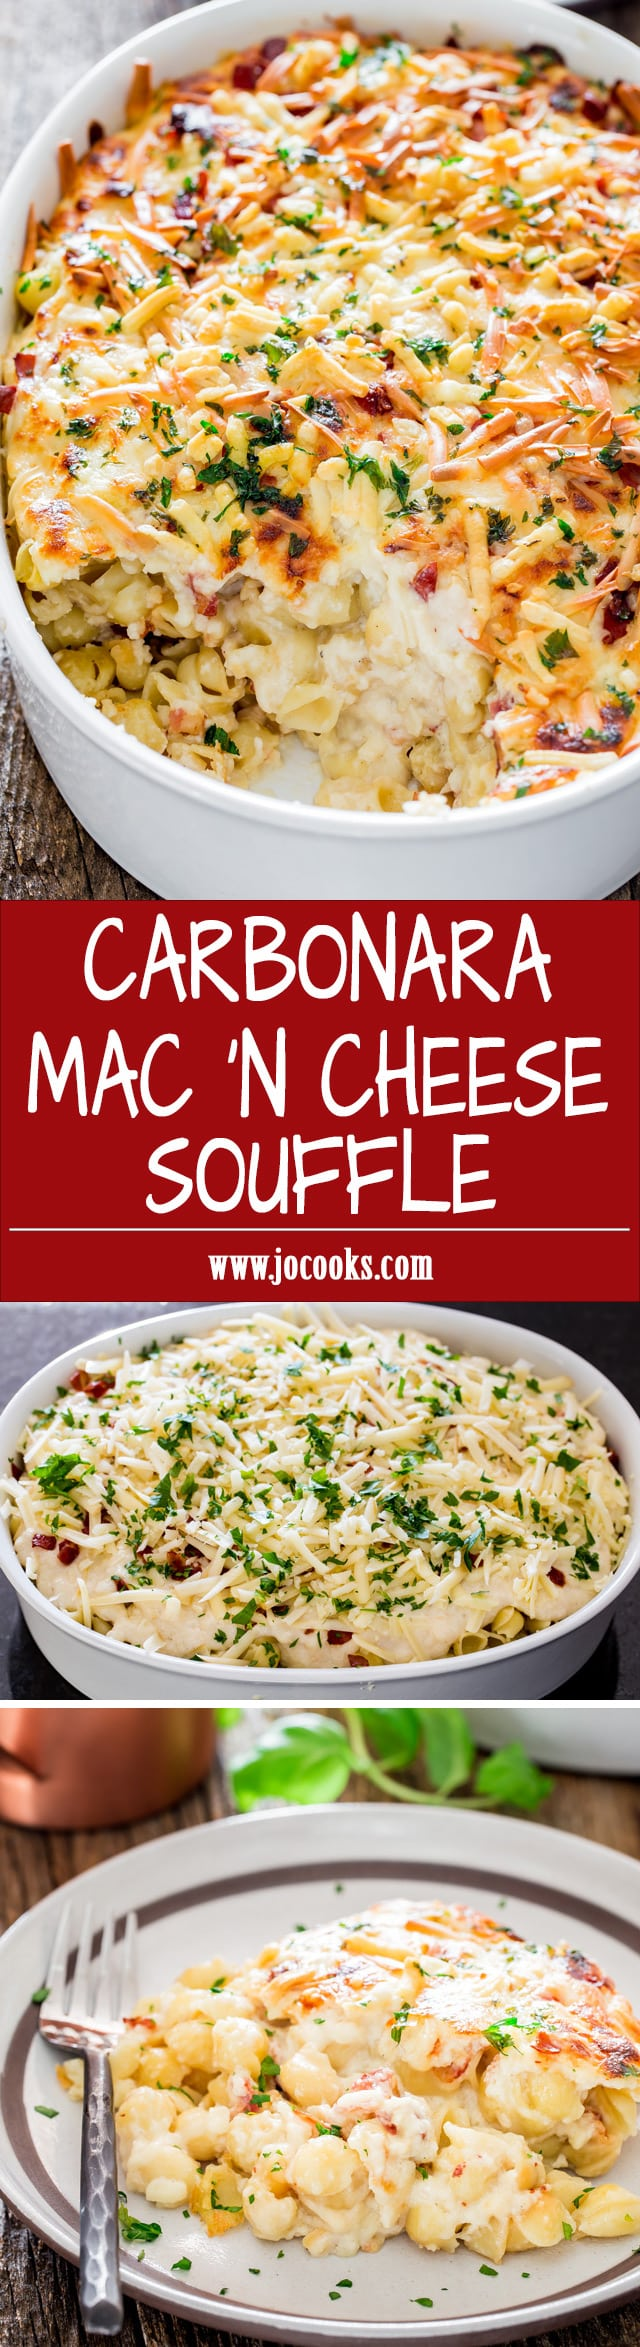 ... cheese more macaroni and cheese please mac and cheese carbonara mac